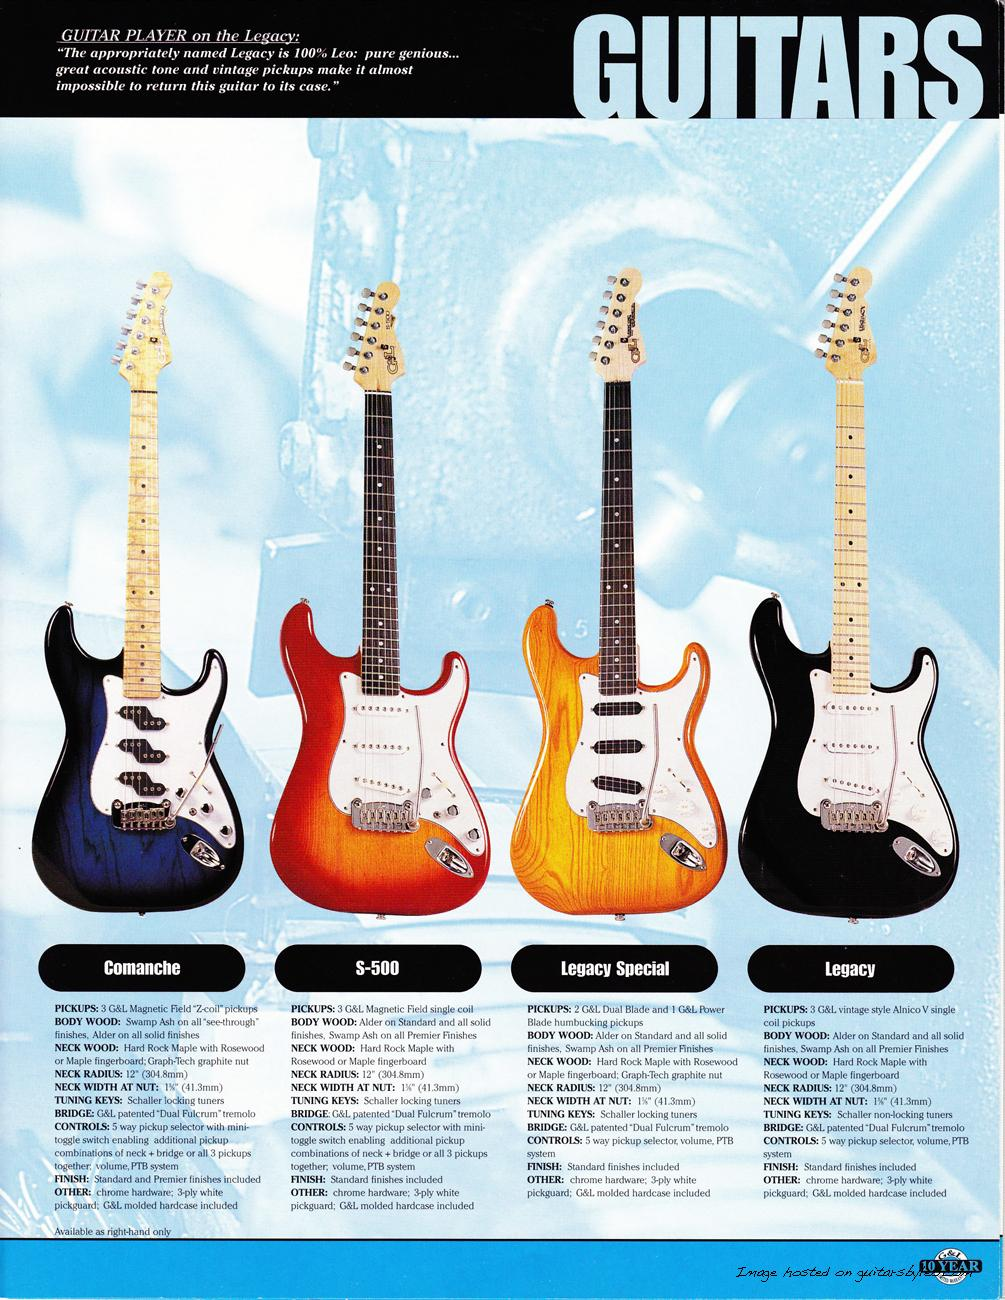 The G&L Discussion Page • View topic - Shaller locking